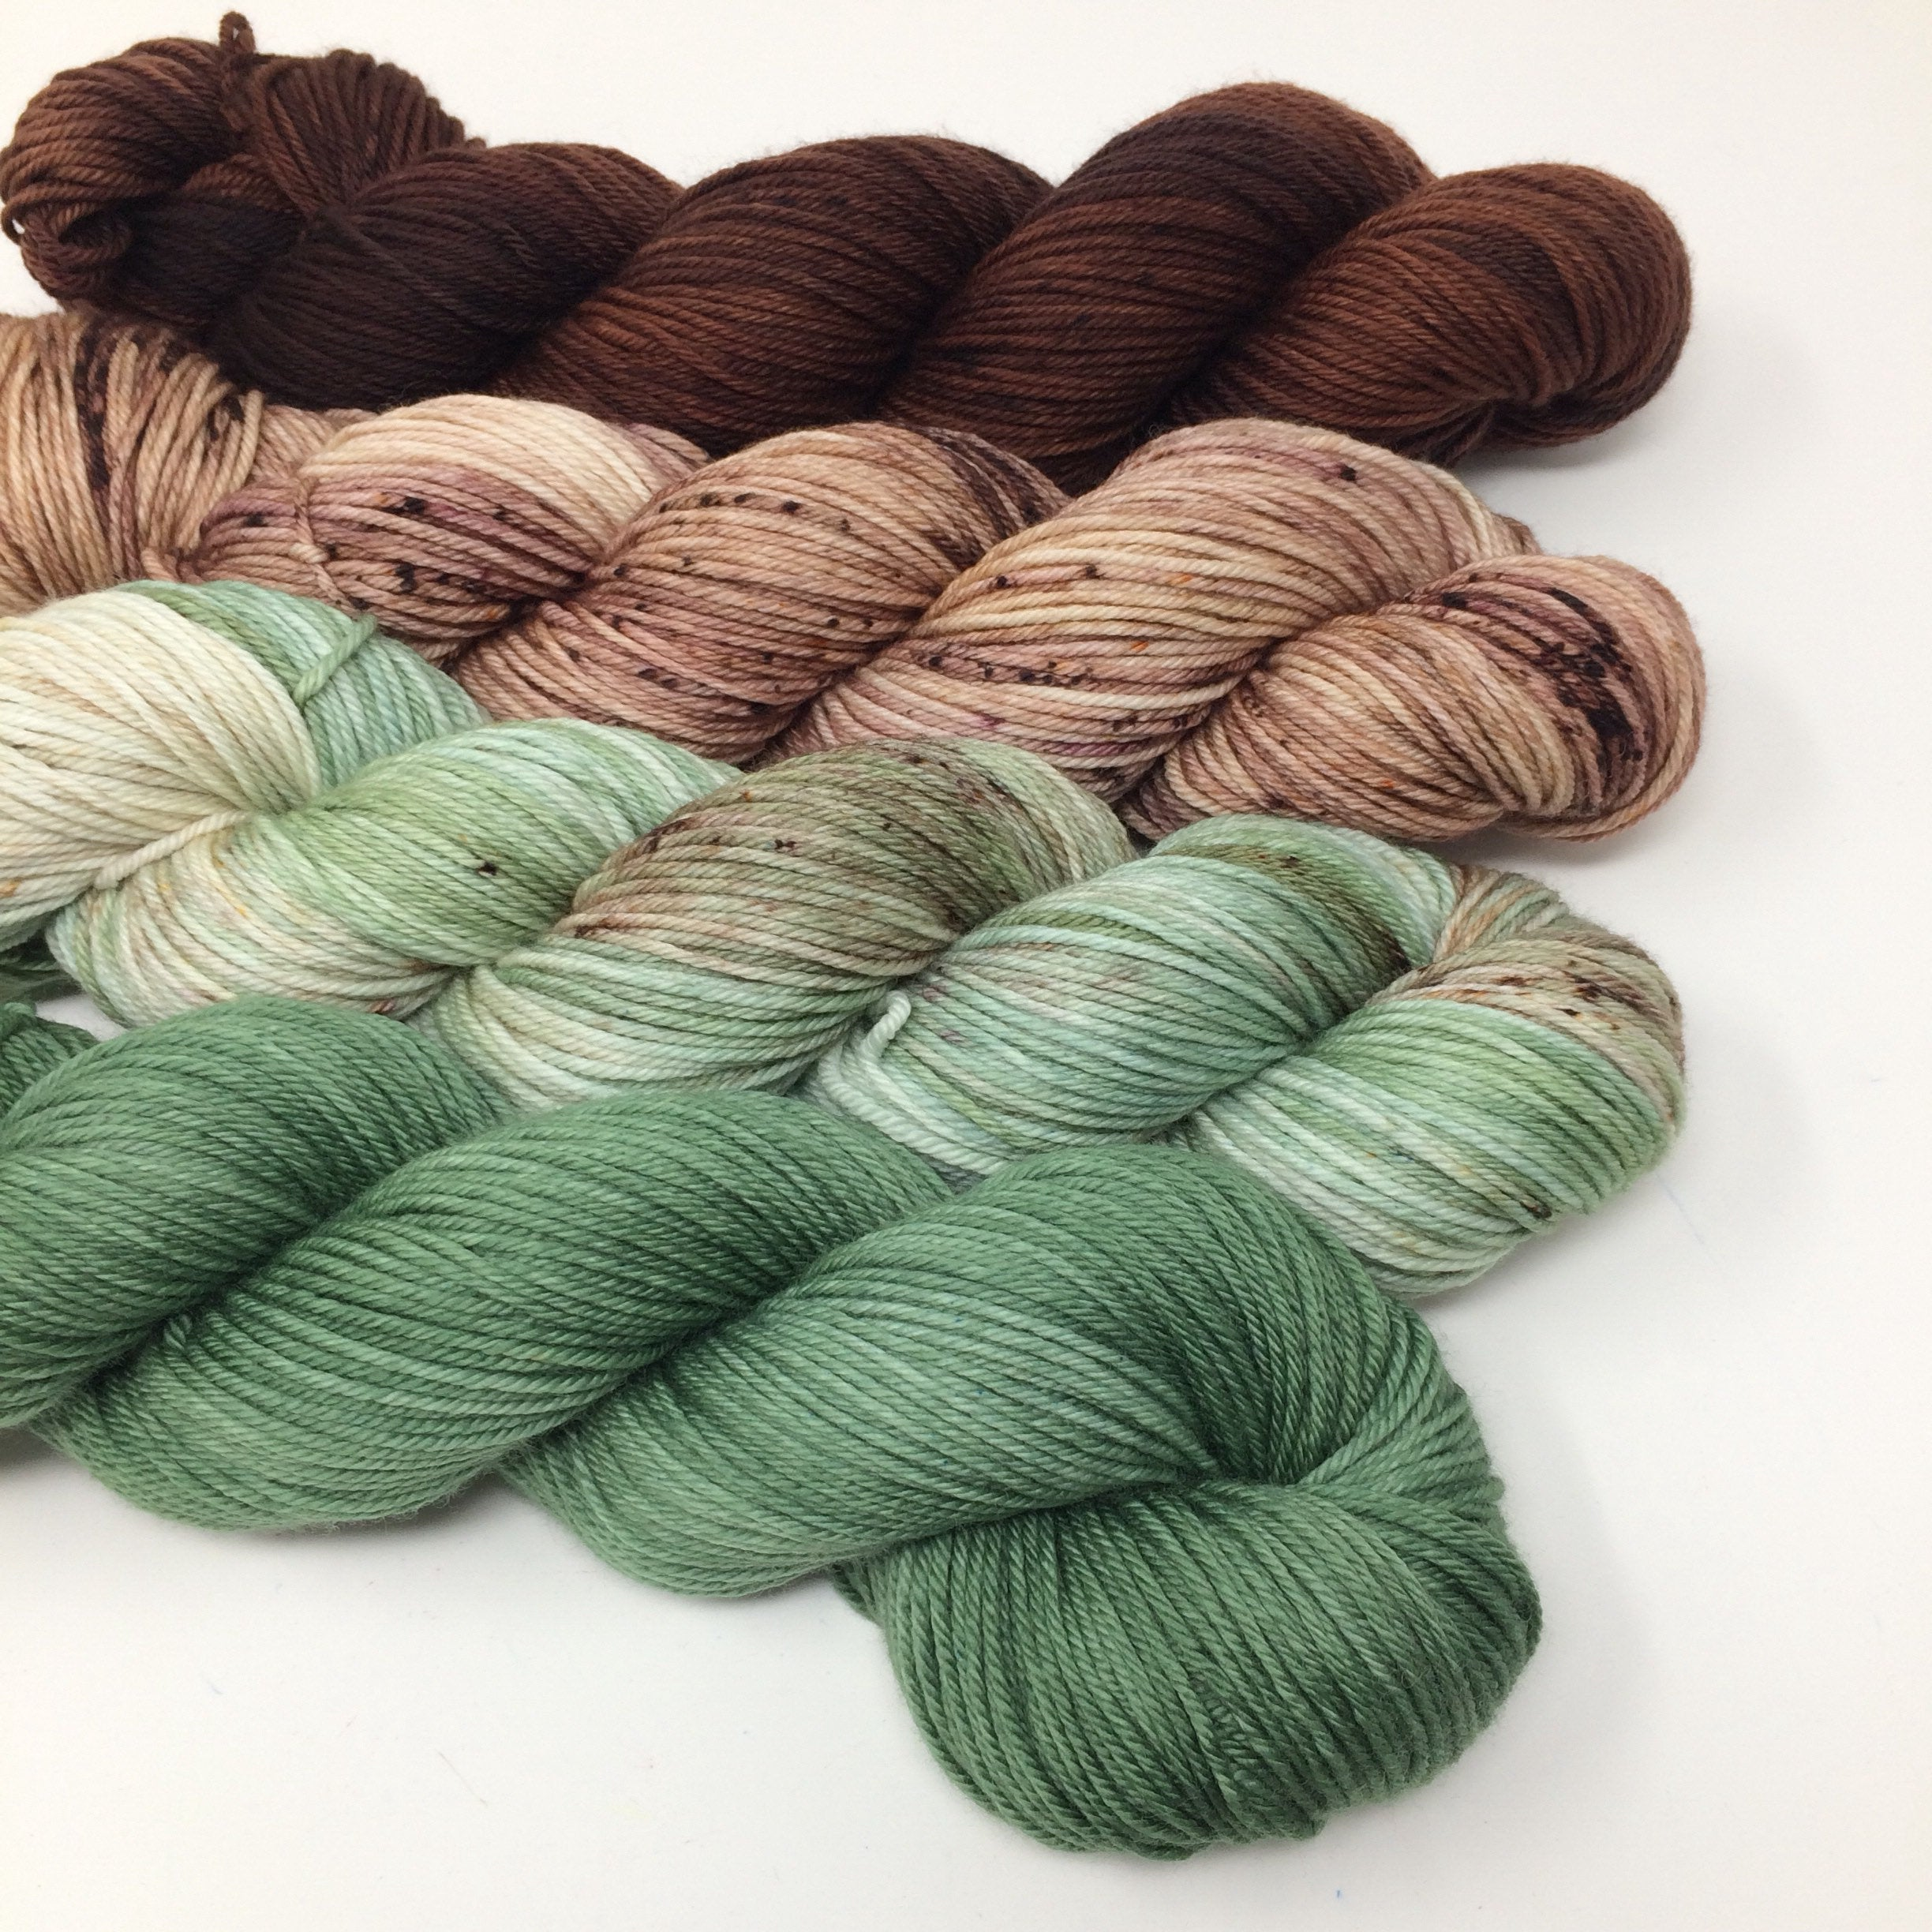 Fade Sets - 2,000 yards - in delightful dk - Mistletoe in the Trees